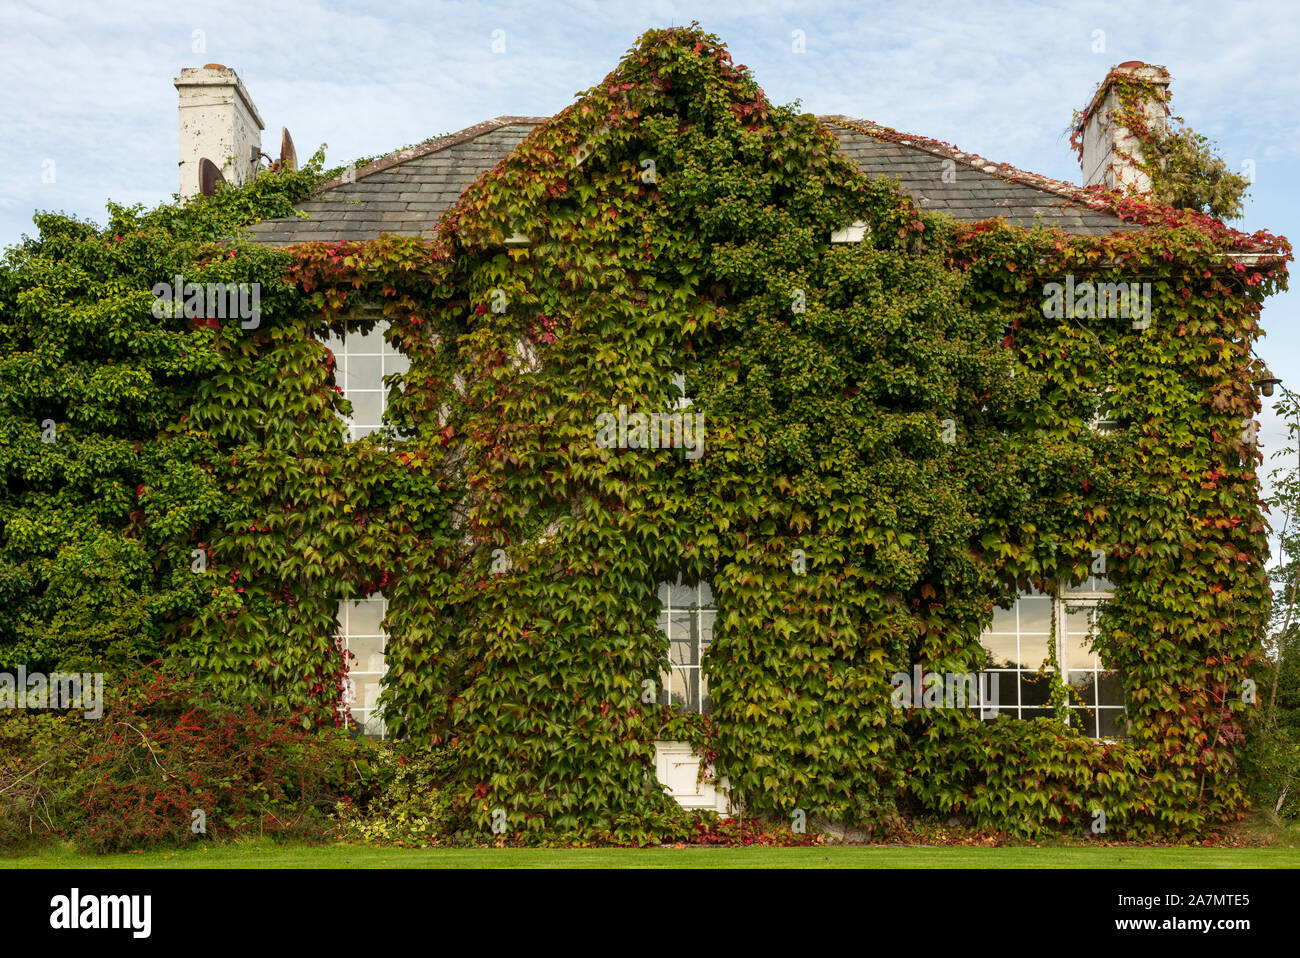 autumnal-scene-with-quirky-cottage-house